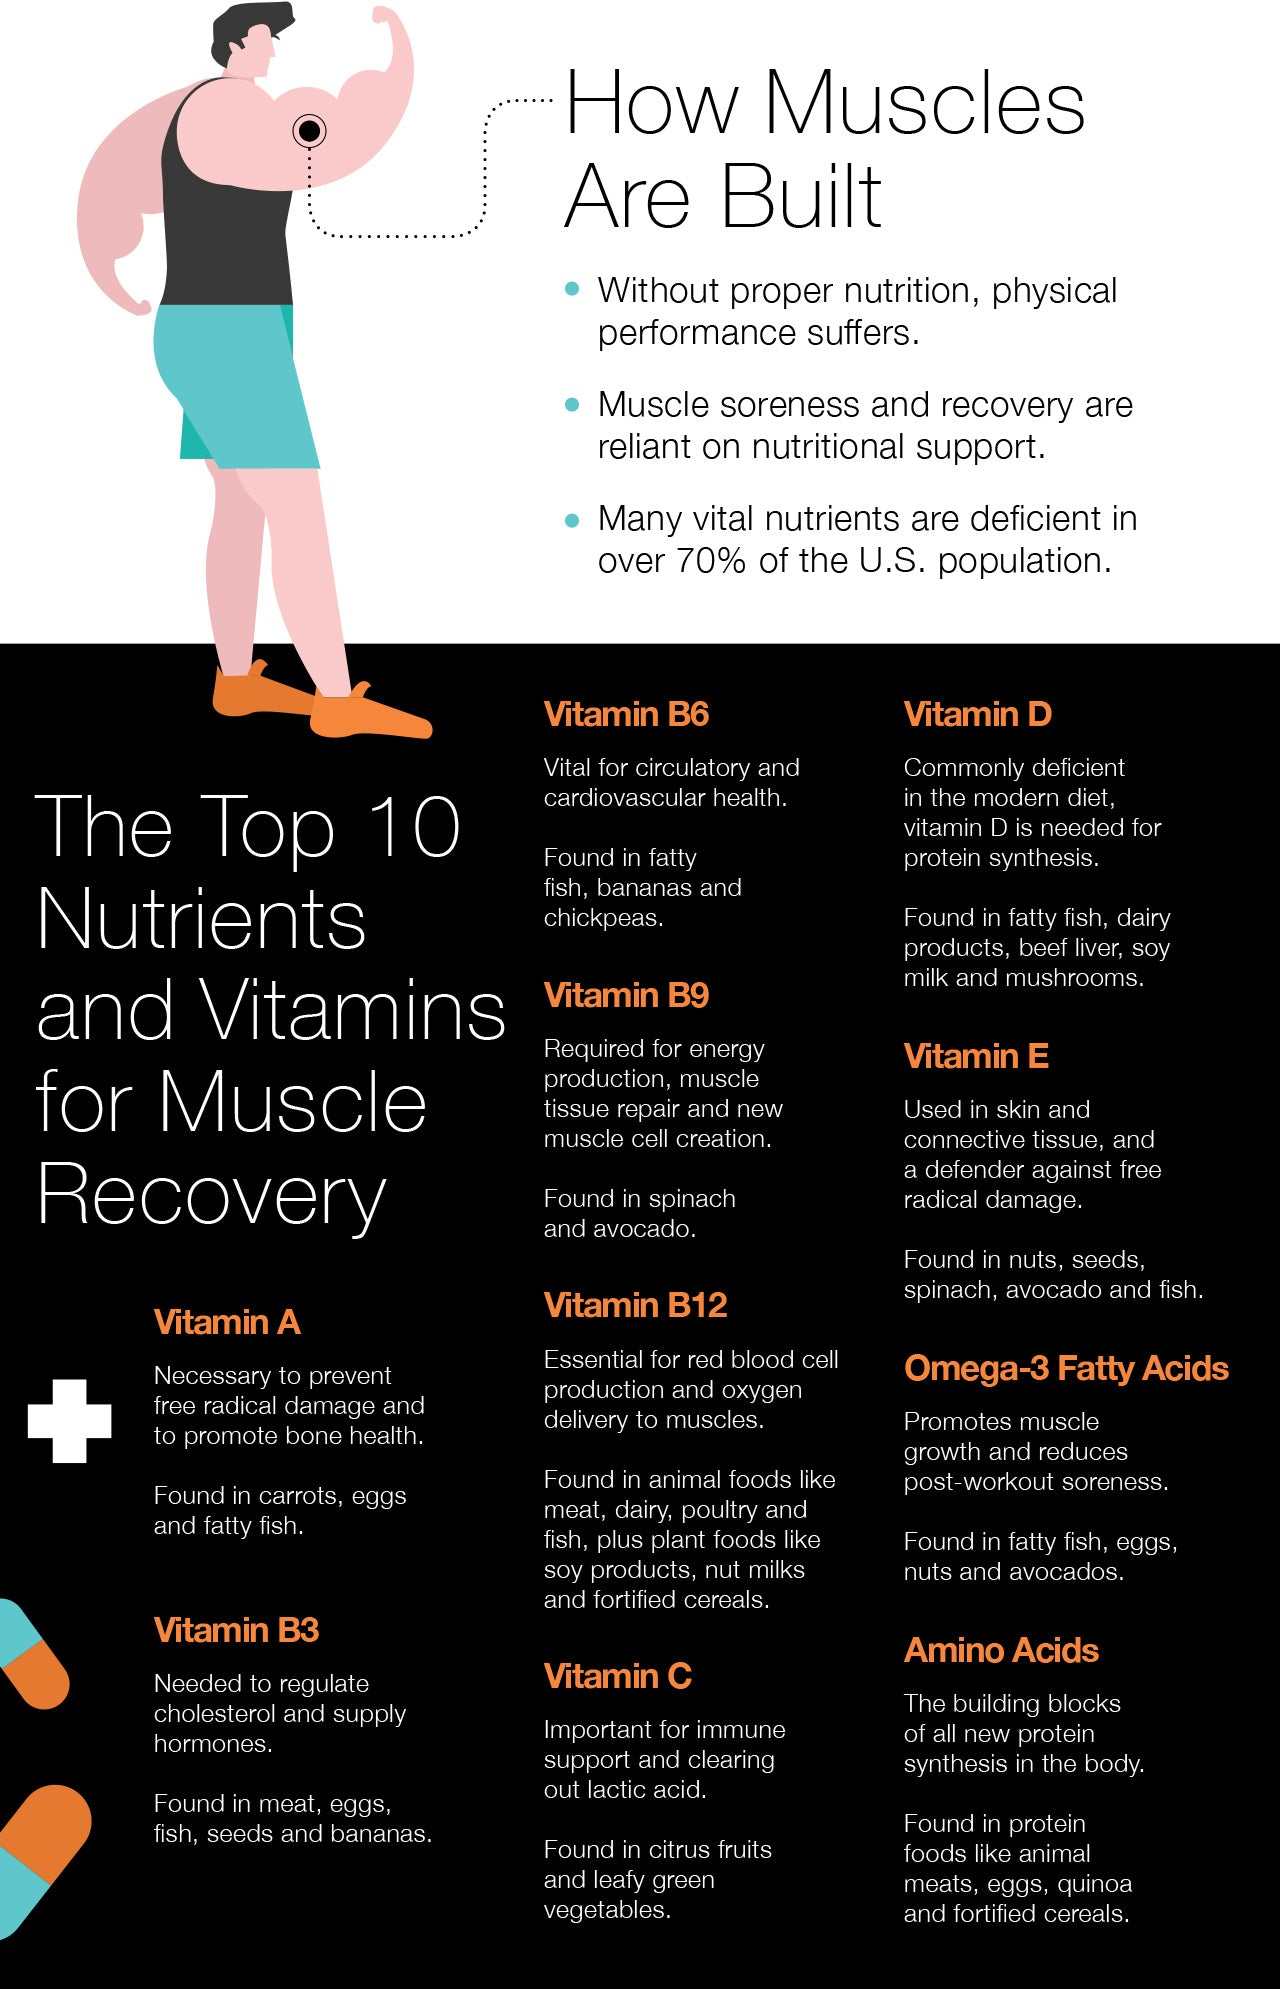 The Top 10 Nutrients and Vitamins for Muscle Recovery